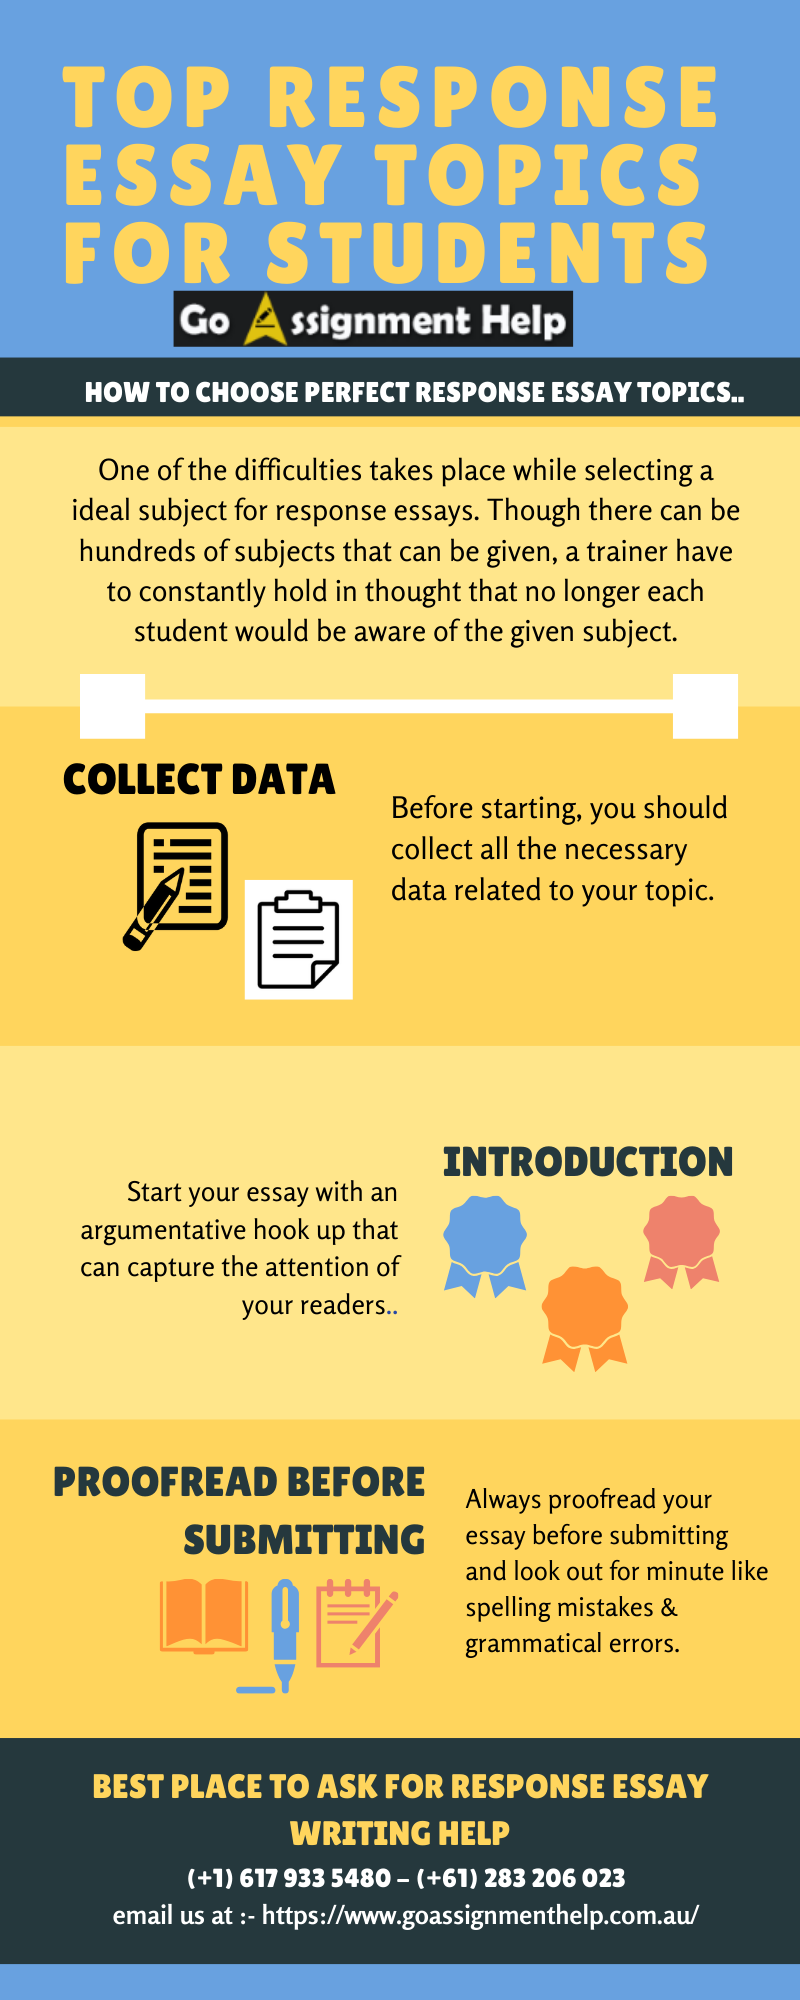 Are you searching for best essay topics? Choosing the